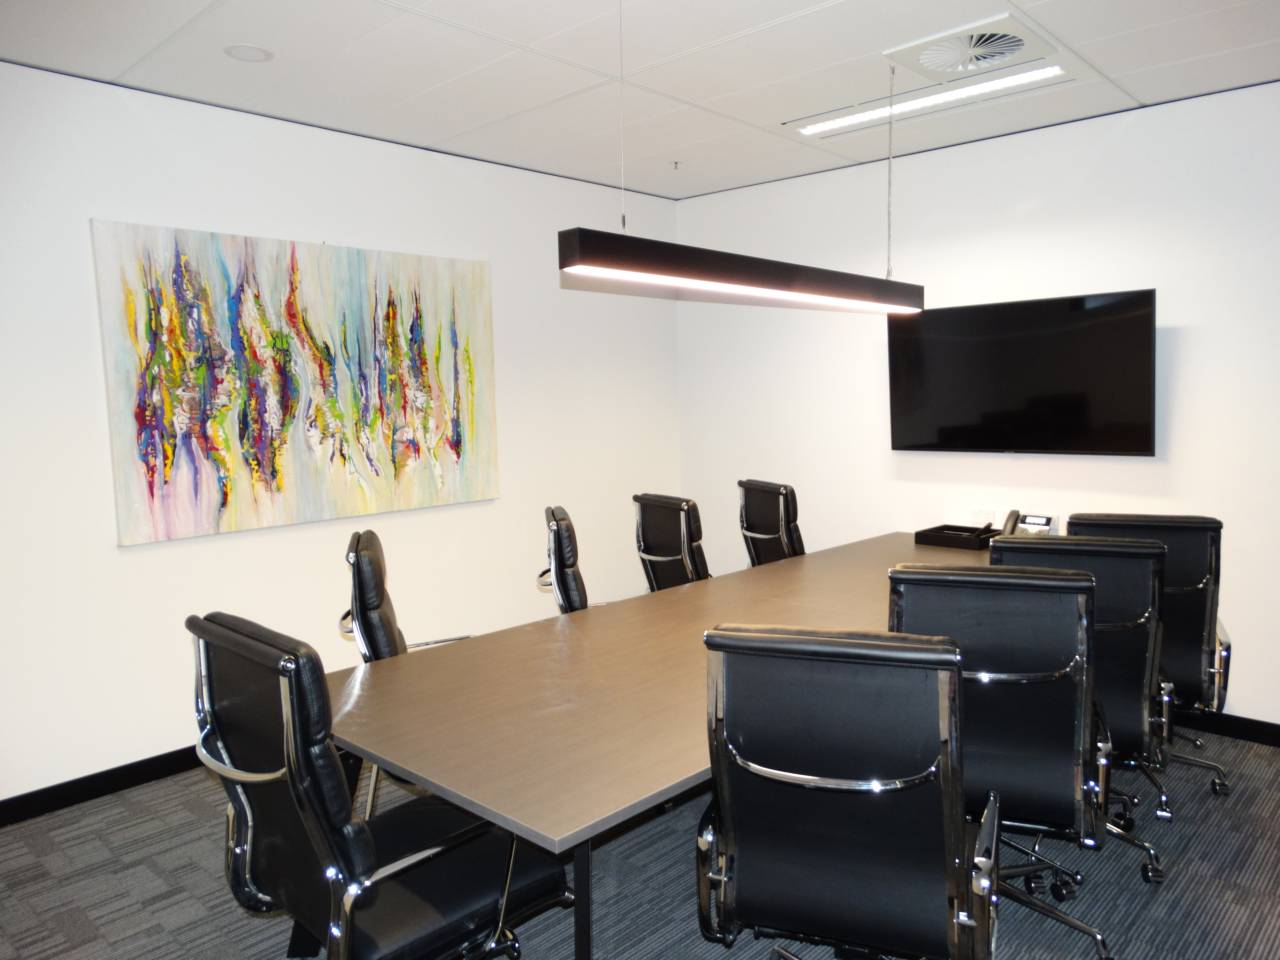 Meeting Room With A TV Screen And A Long Desk With Nine Chairs